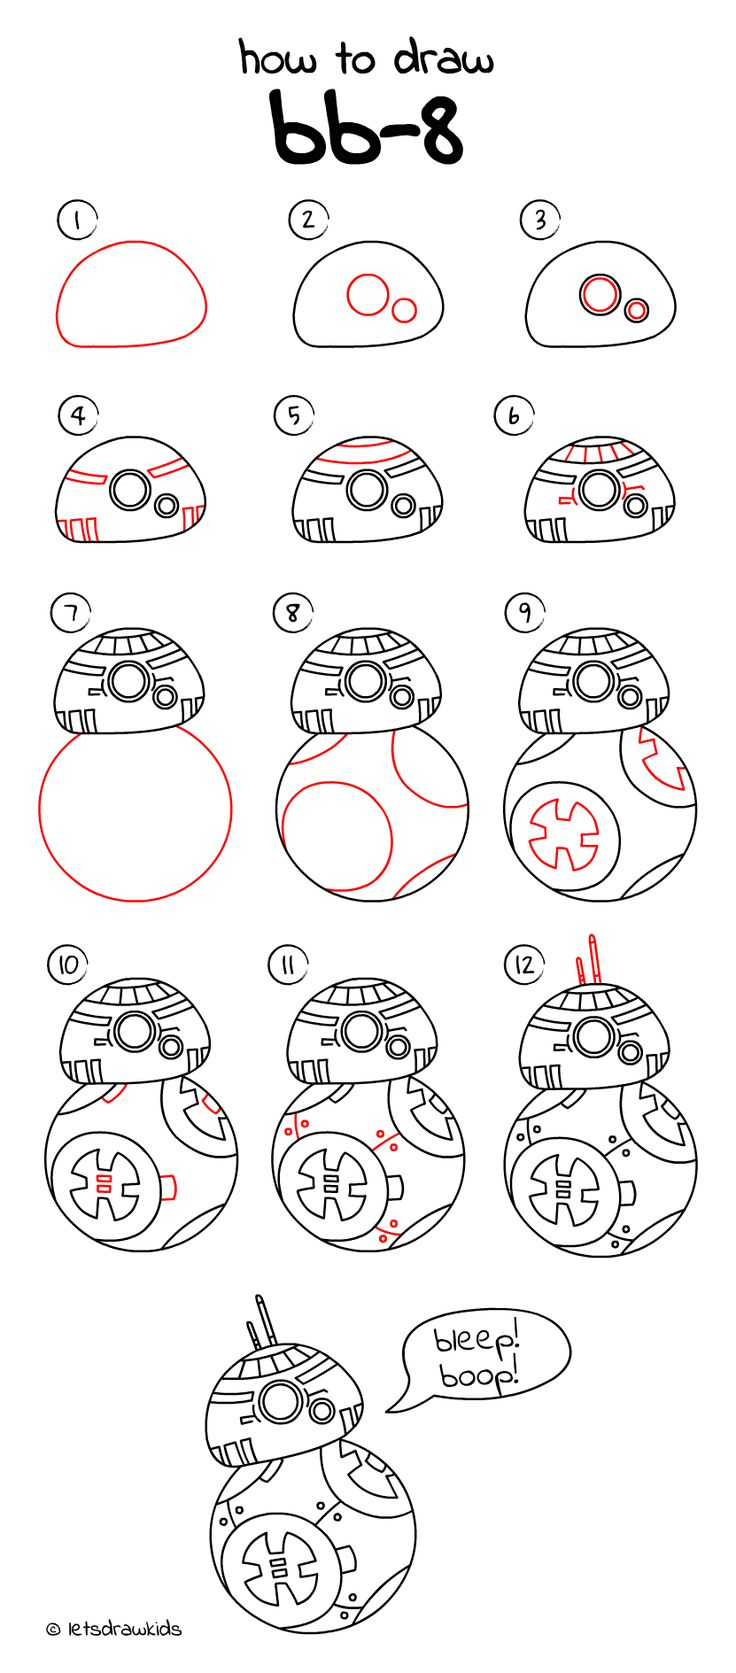 Uncategorized How To Draw Things For Kids best 25 easy drawings for kids ideas on pinterest fun how to draw bb 8 from star wars drawing step by step